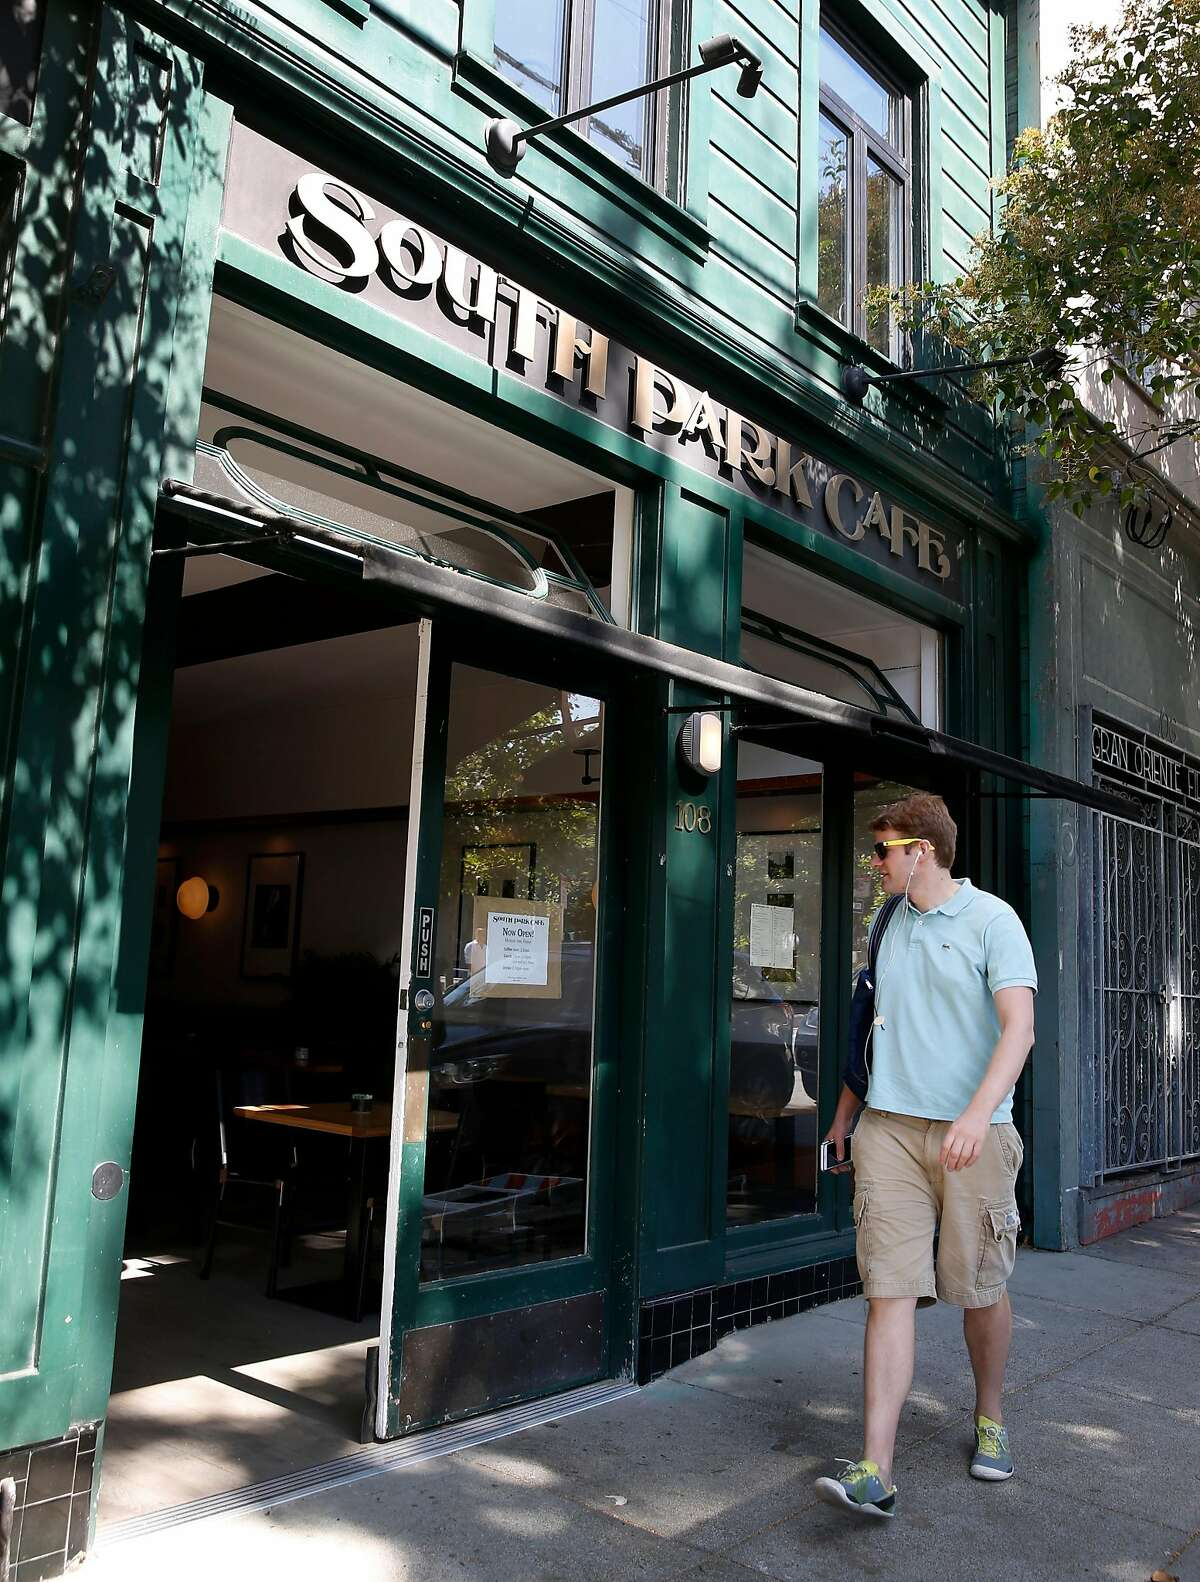 The newly reopened South Park Cafe resumes lunch service in San Francisco, Calif. on Wednesday, Sept. 11, 2019. Tech startup Brex purchased and renovated the cafe after it had been closed for over a year.